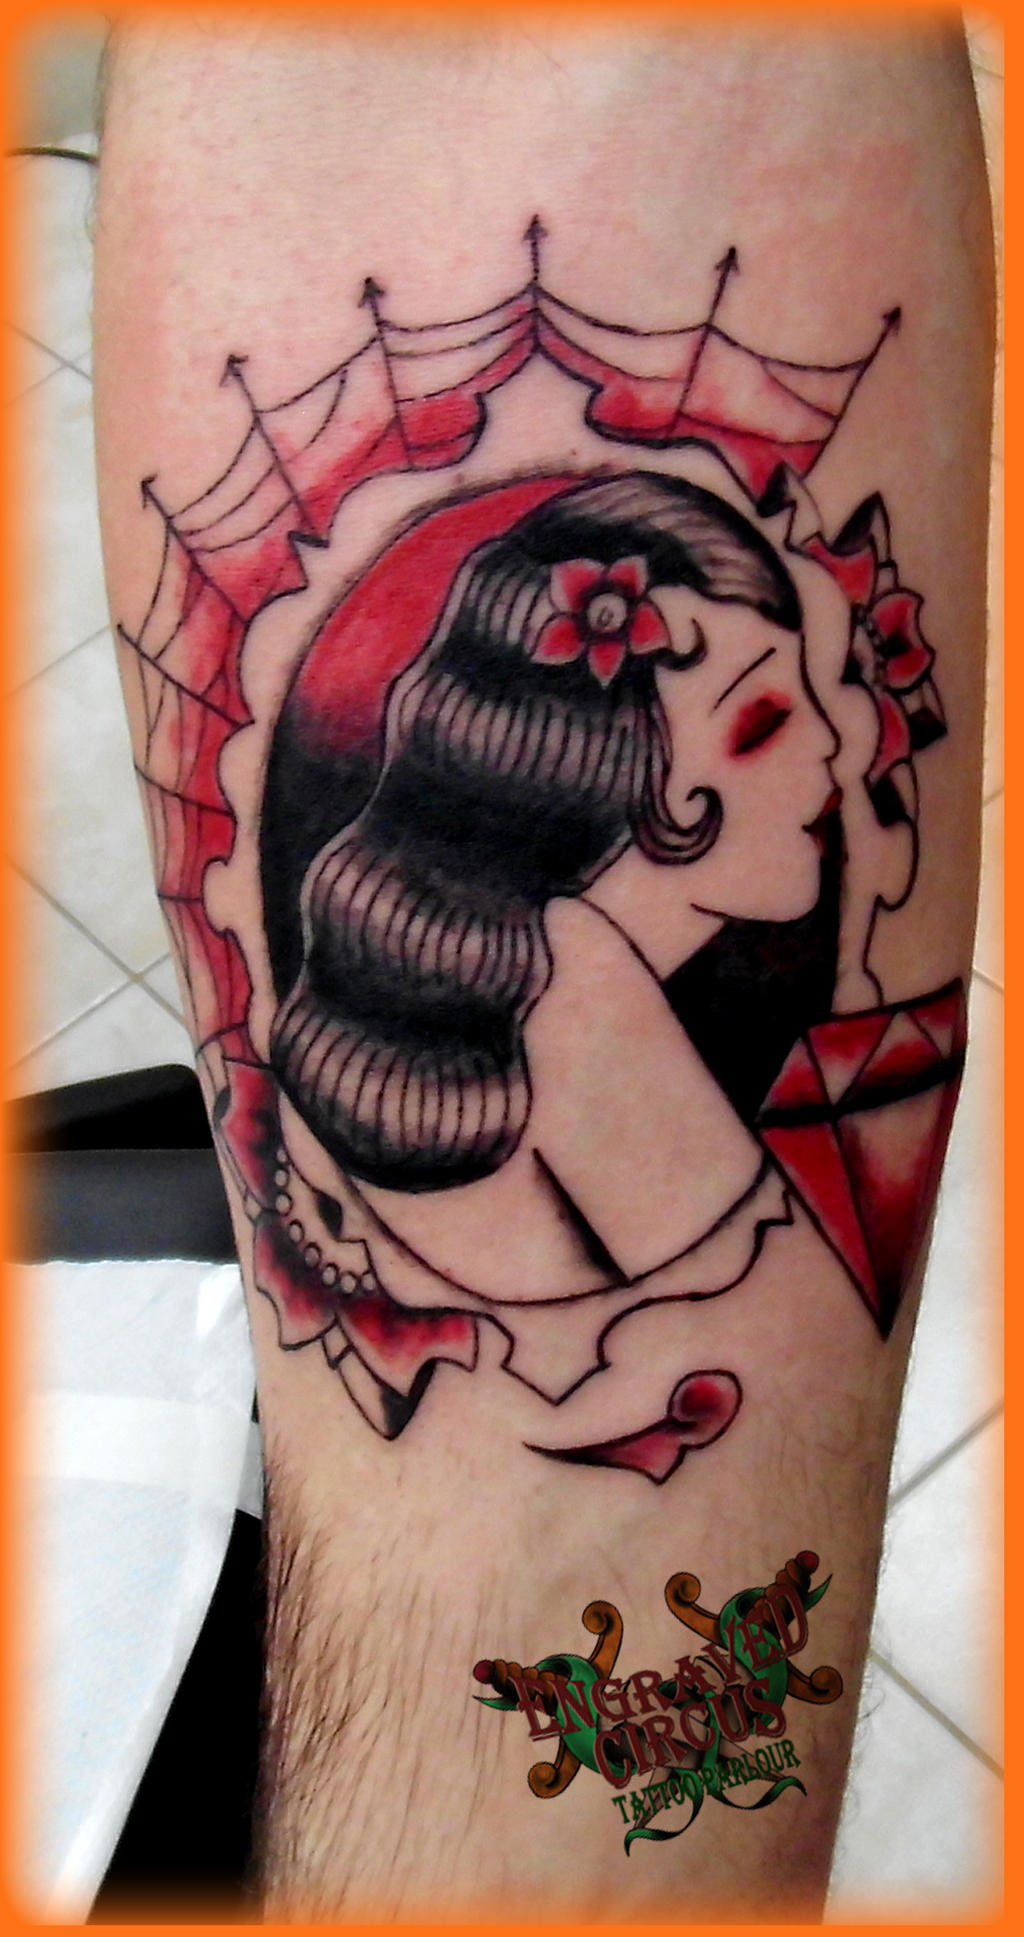 Till death do us part 1 by loop1974 on deviantart for Until death do us part tattoo